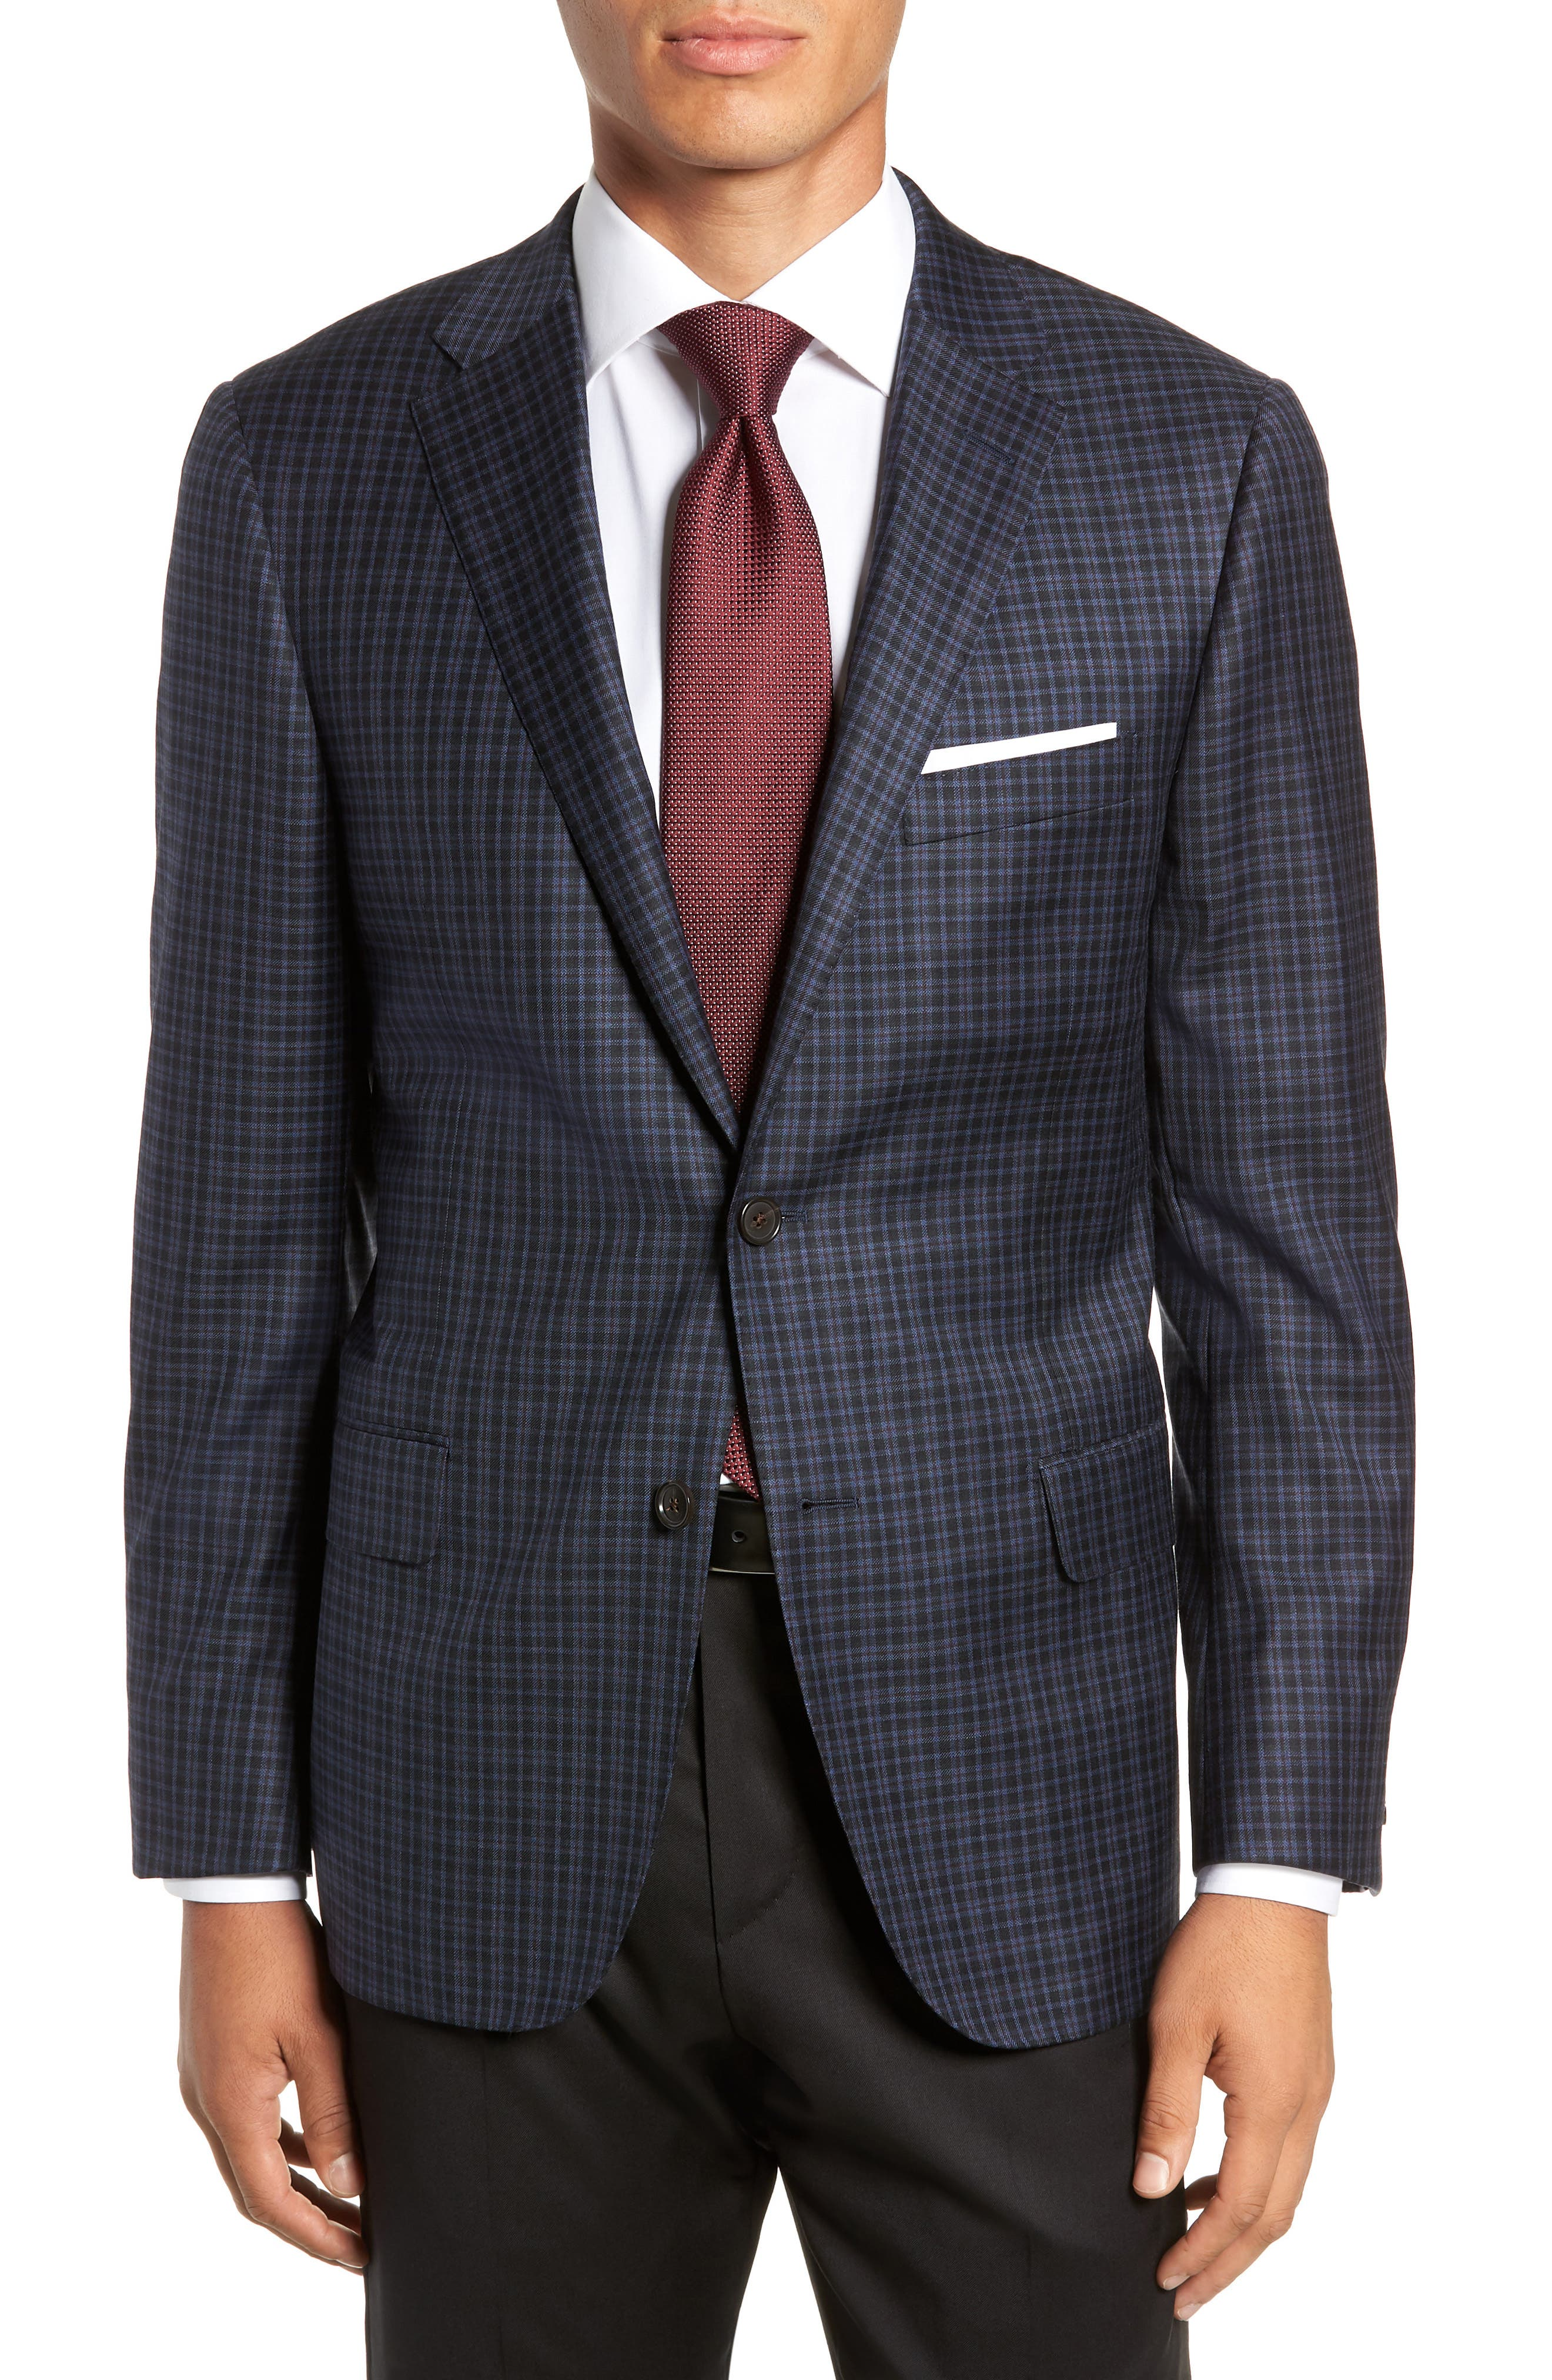 HICKEY FREEMAN Classic Fit Plaid Wool Sport Coat in Navy